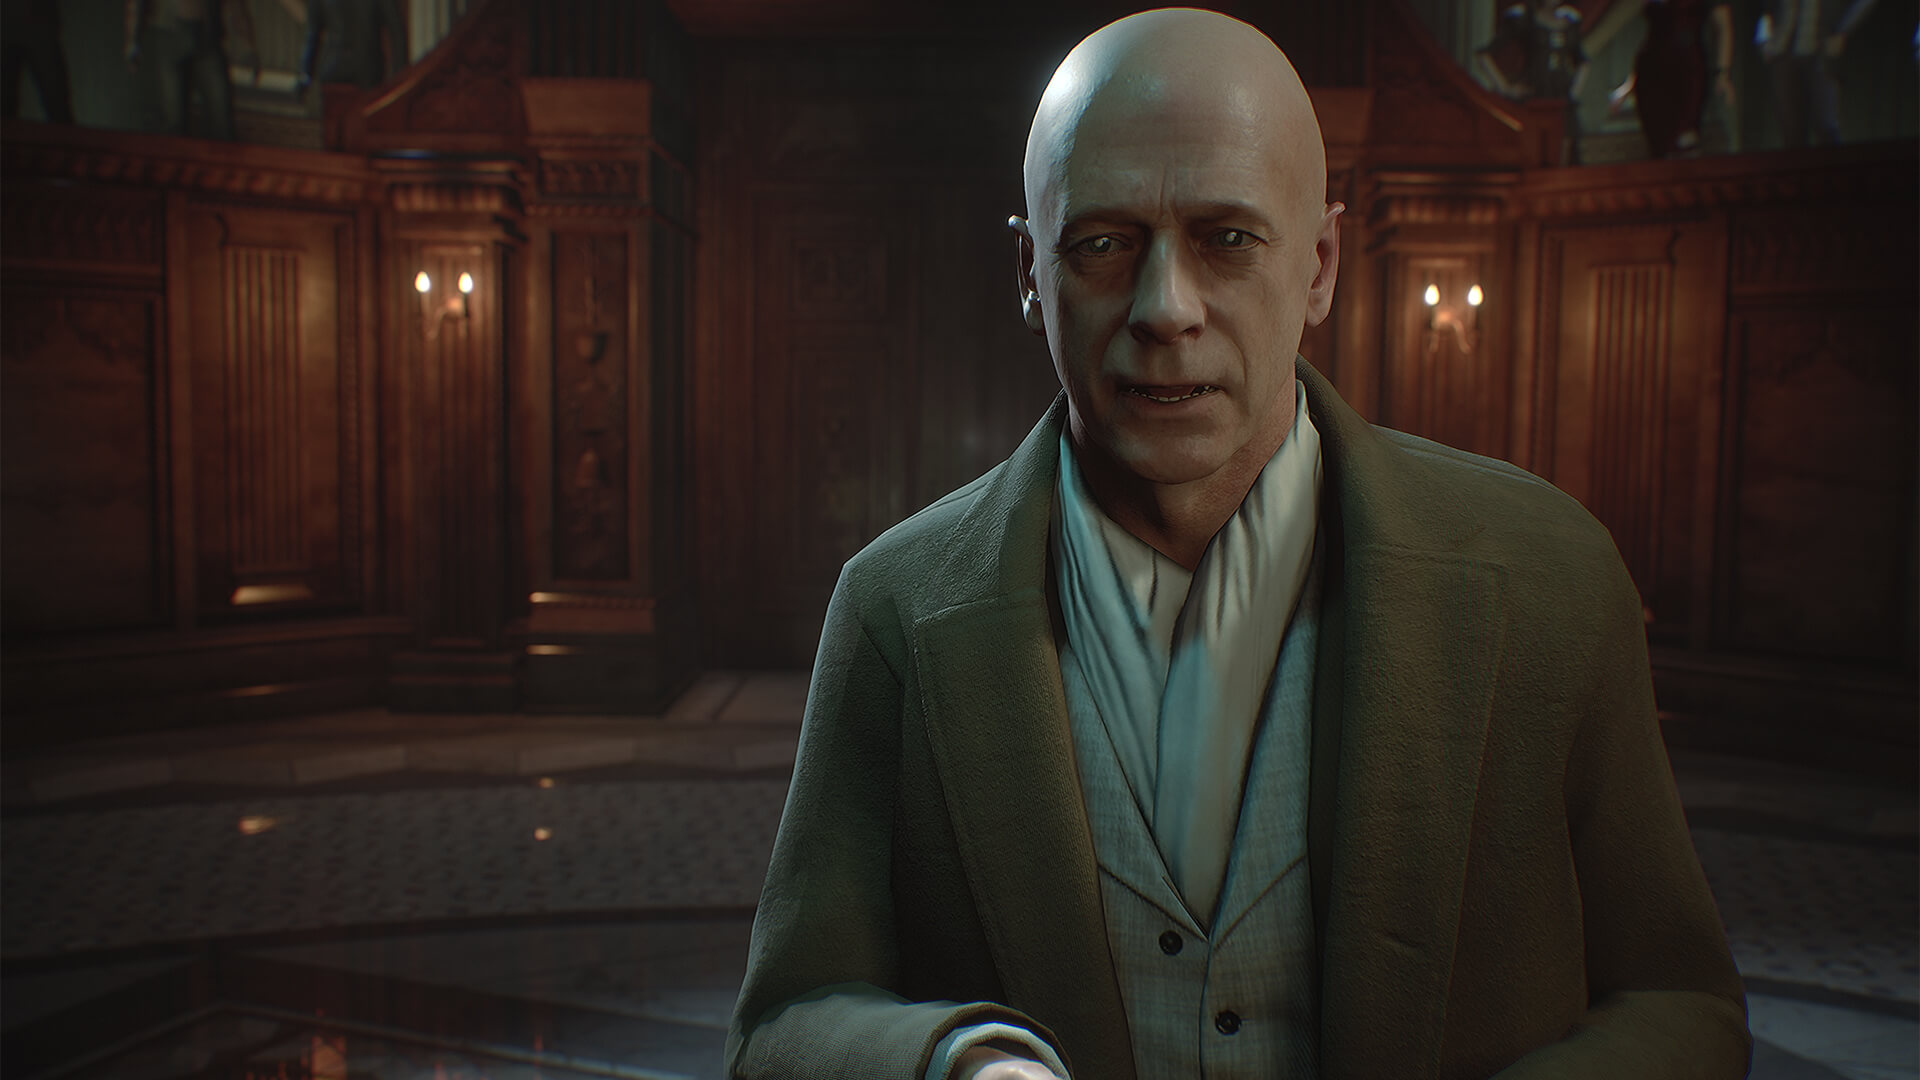 Vampire The Masquerade Bloodlines 2 1 - Vampire: The Masquerade - Bloodlines 2 may not release in the first half of 2021